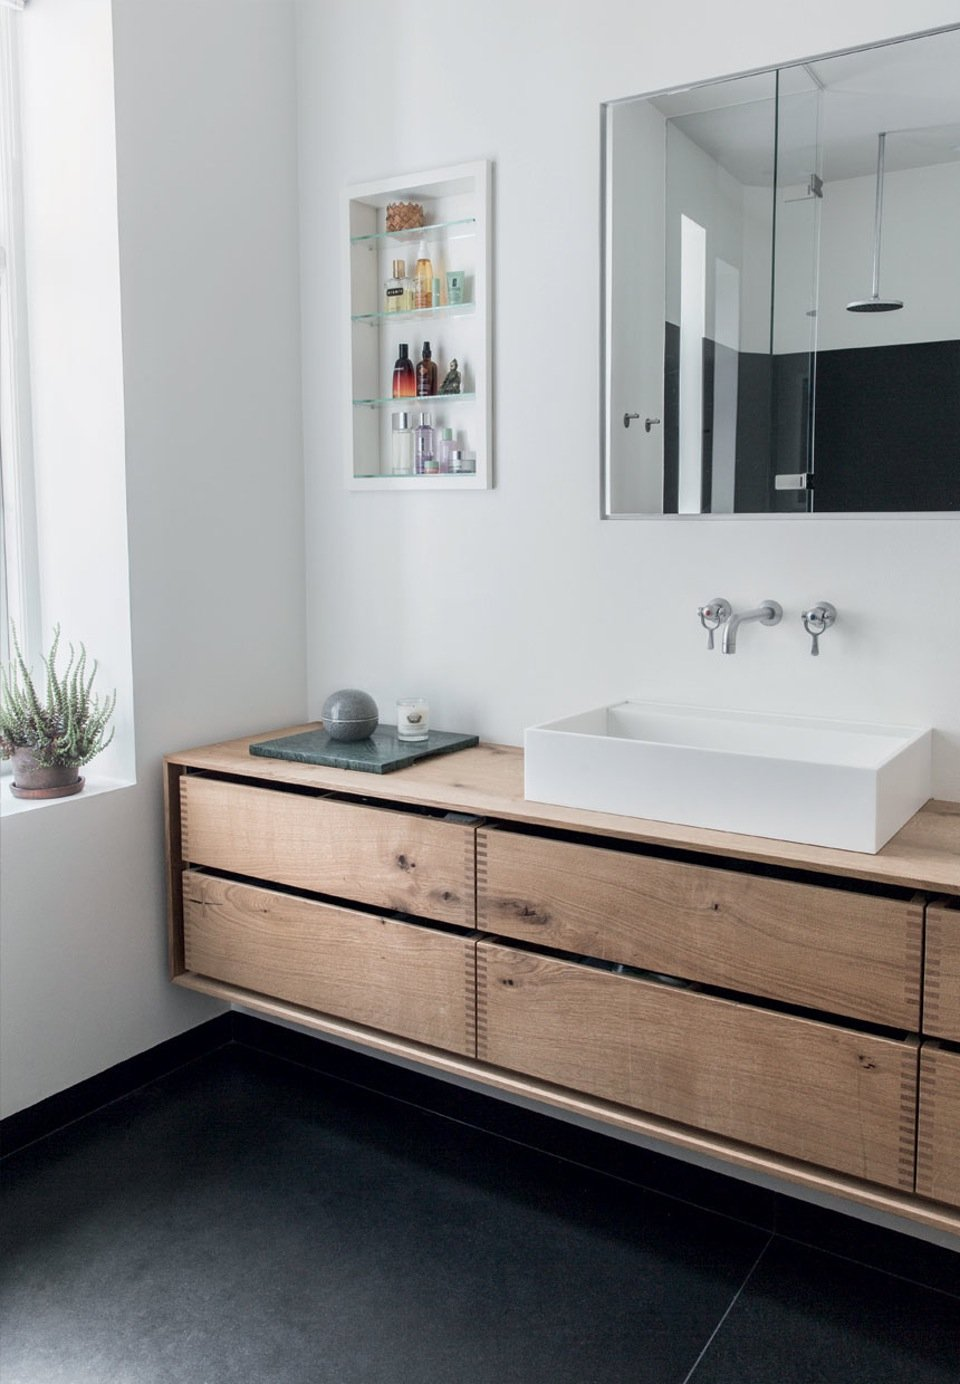 The fittings in the bathroom are made of oak planks treated with natural oil. Two large granites slices constitute the floor, creating at the same time a raw and soft contrast.